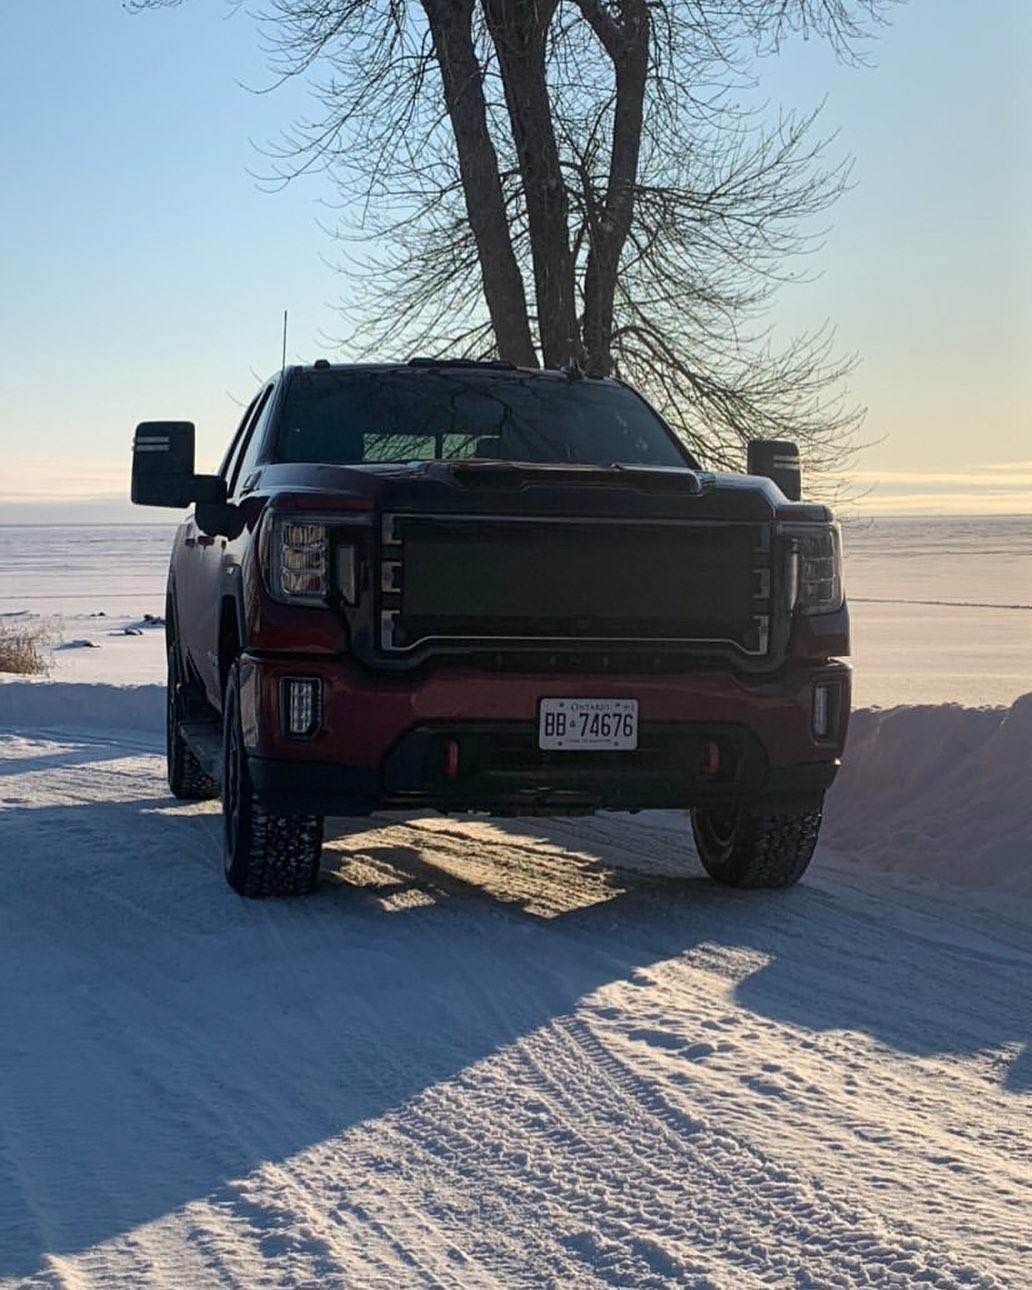 tough truck on the frozen tundra